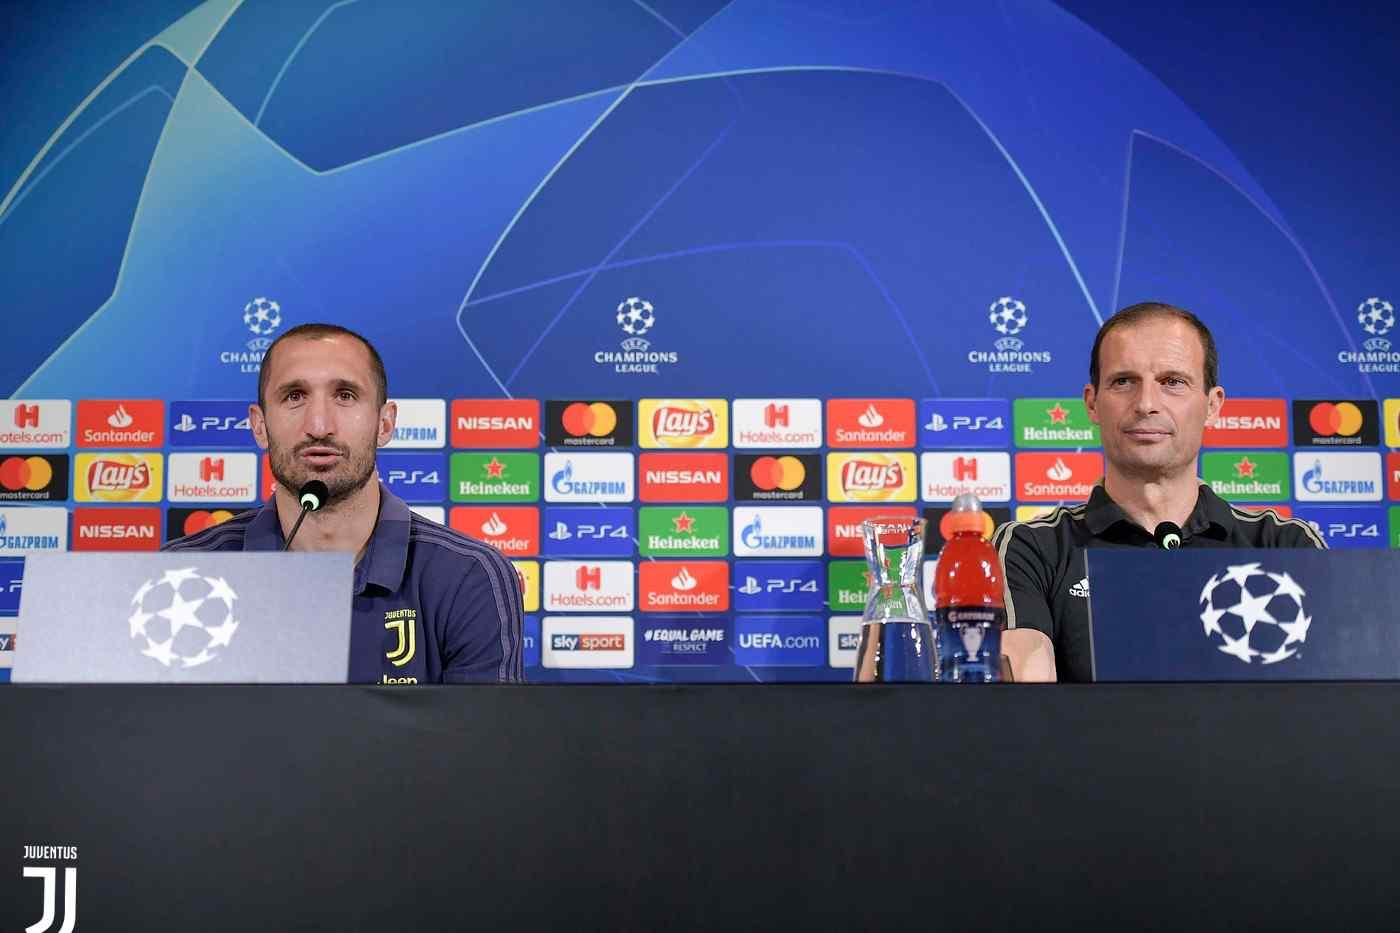 https://www.juventus.com/media/images/galleries/2019/marzo/1103-conferenza-stampa-juve/conf_atletico01.jpg